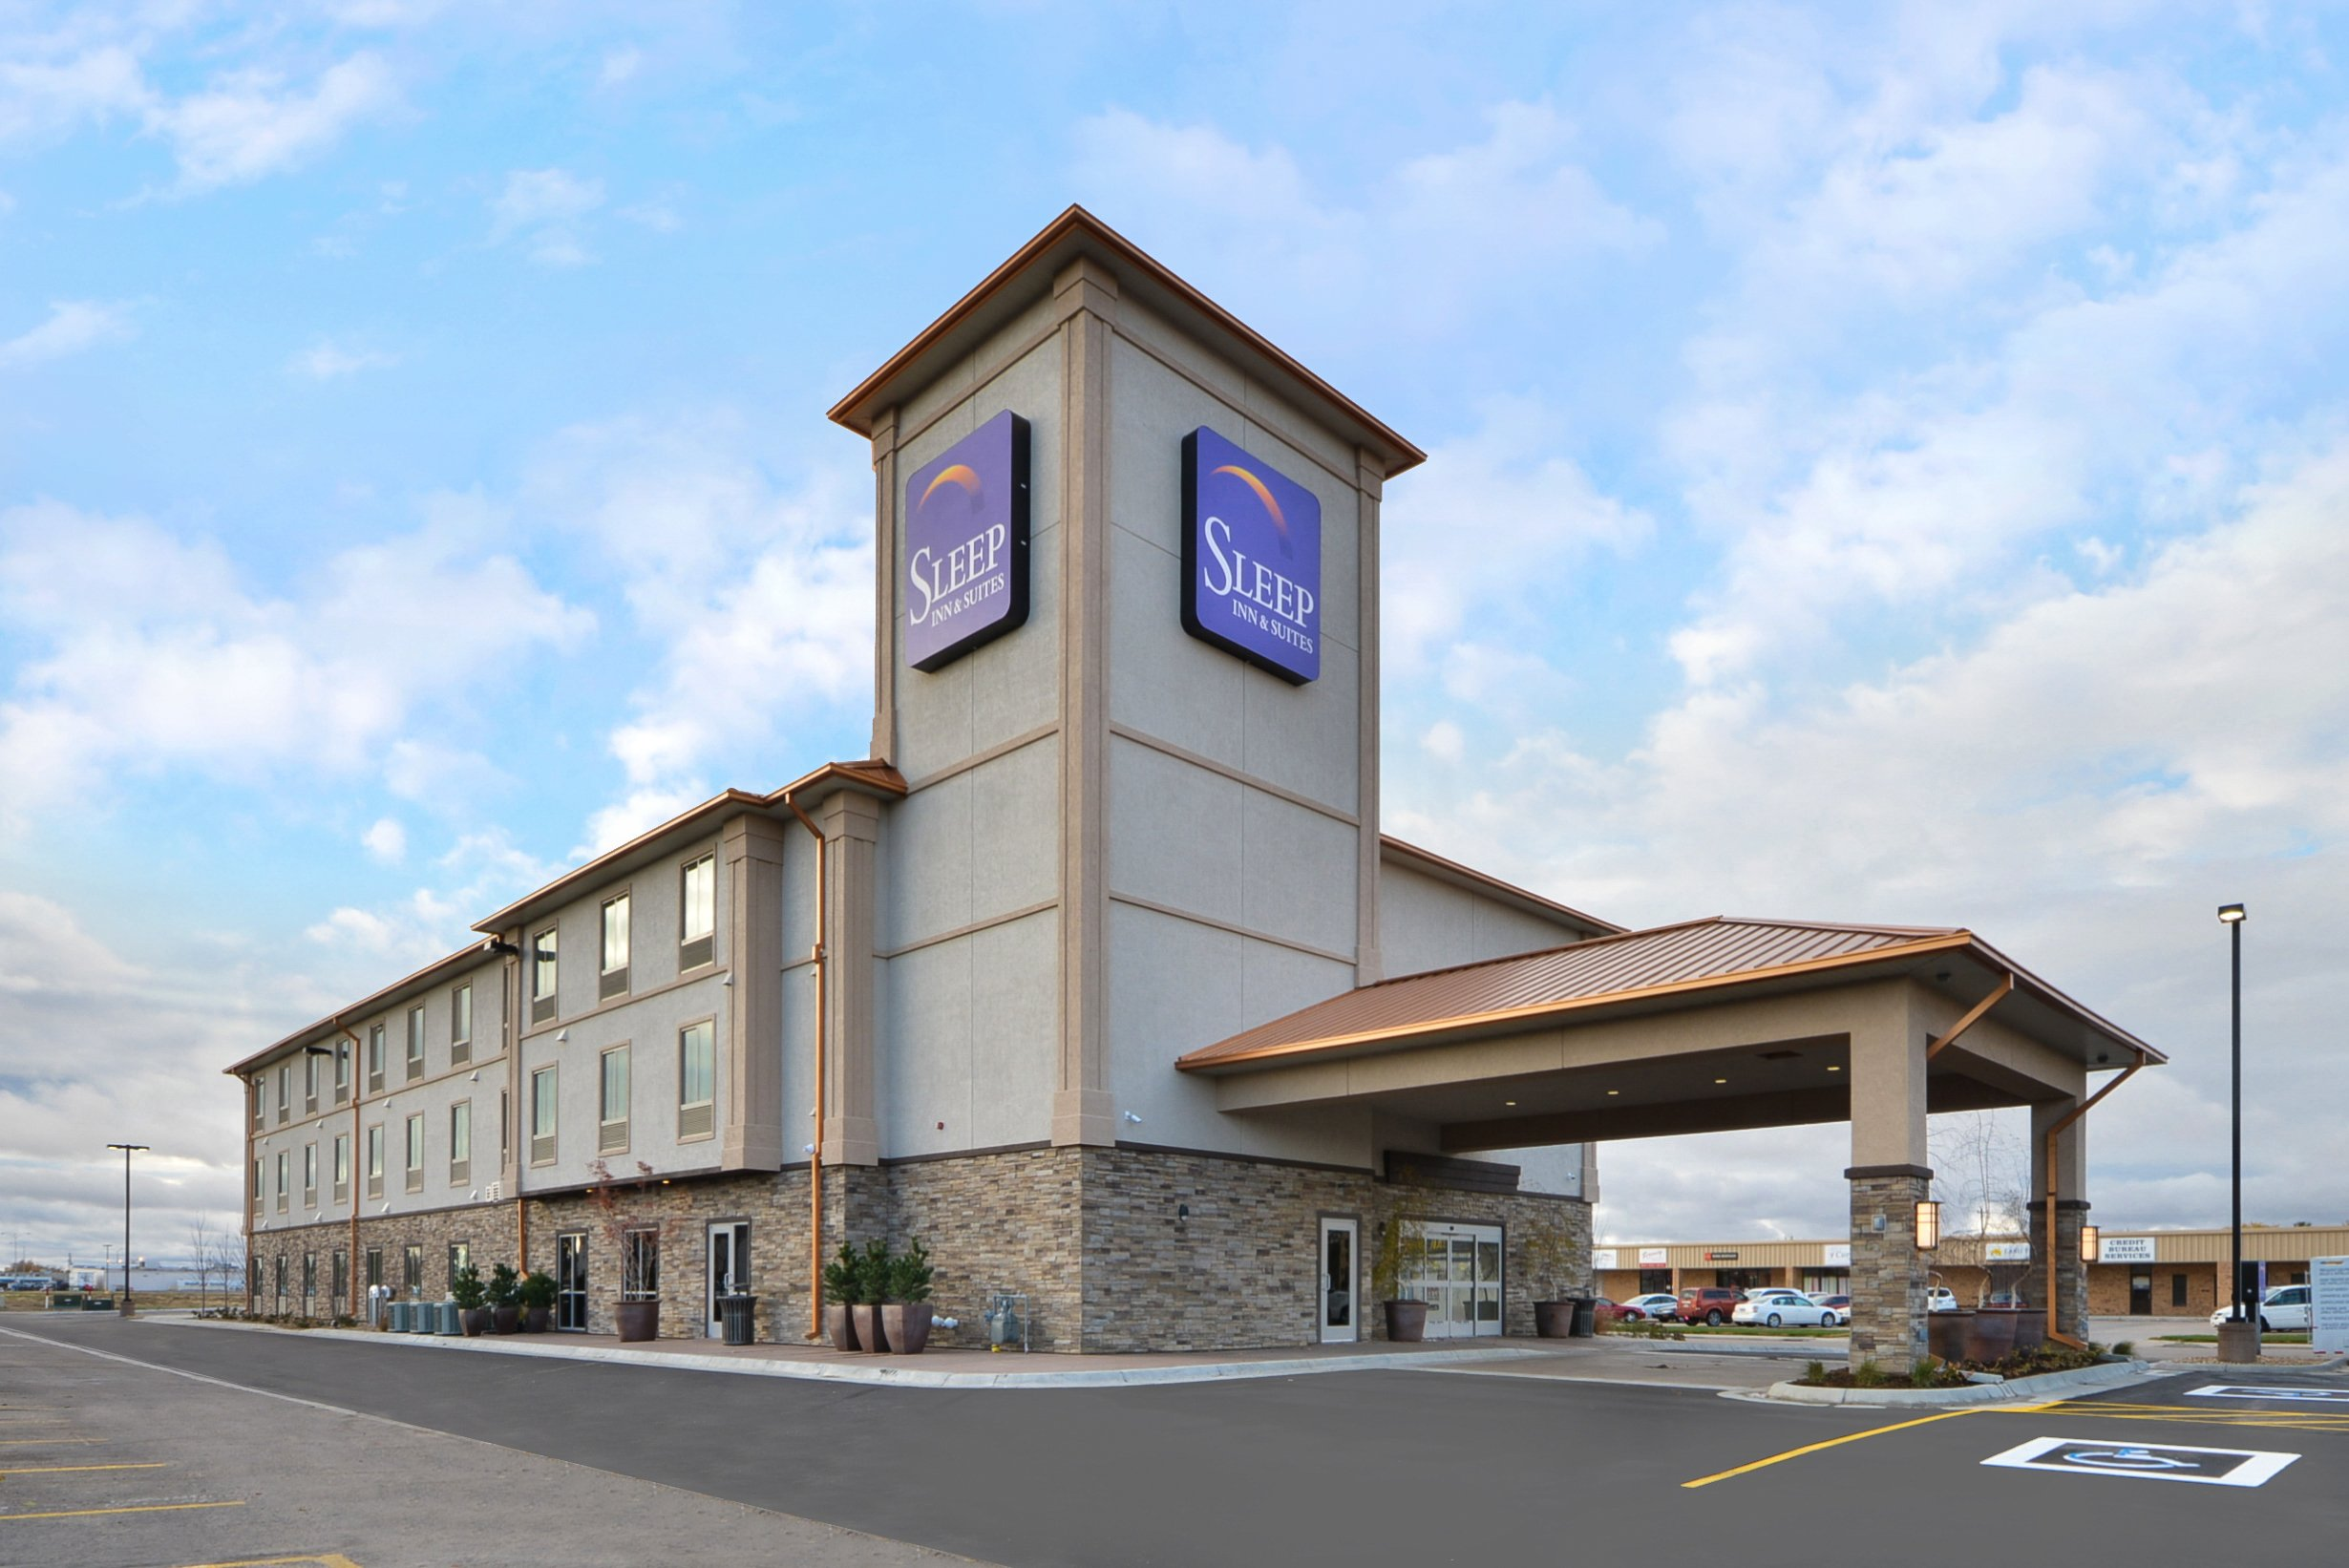 Sleep Inn and Suites Garden City Kansas